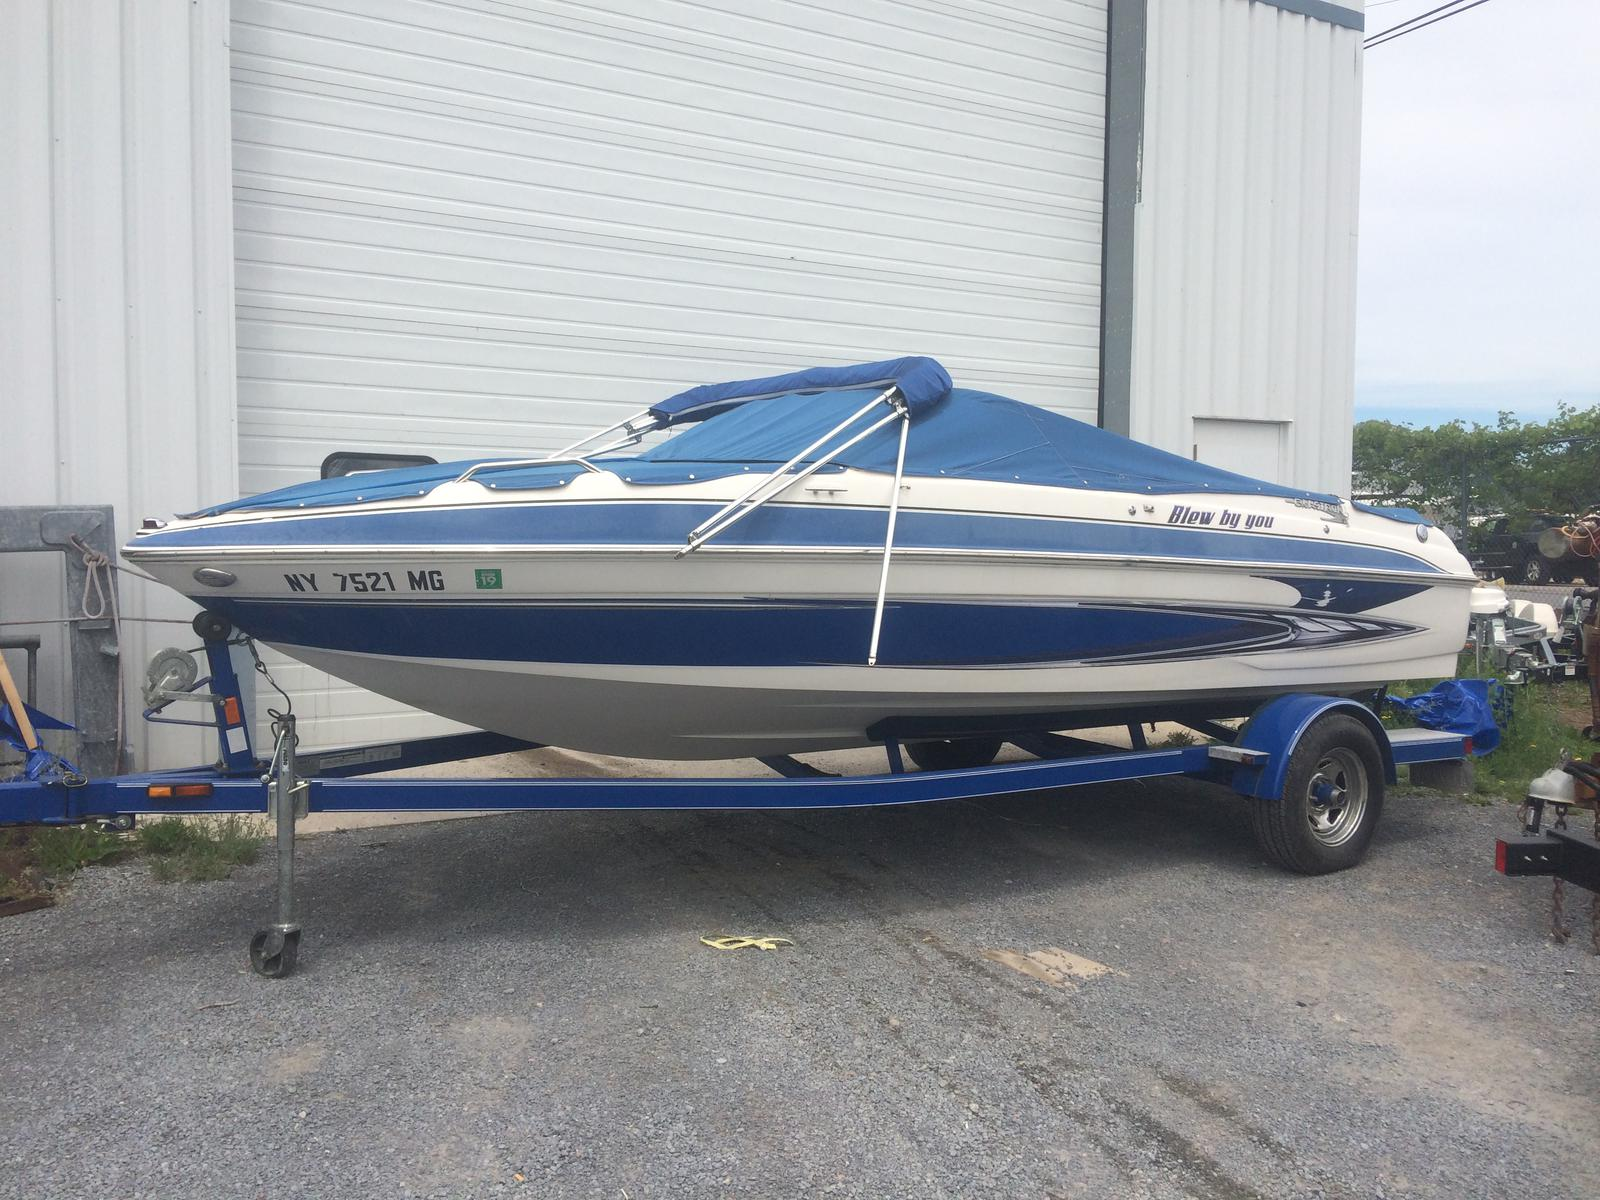 USED 2010 Glastron GT 205 - Hutchinson's Boat Works